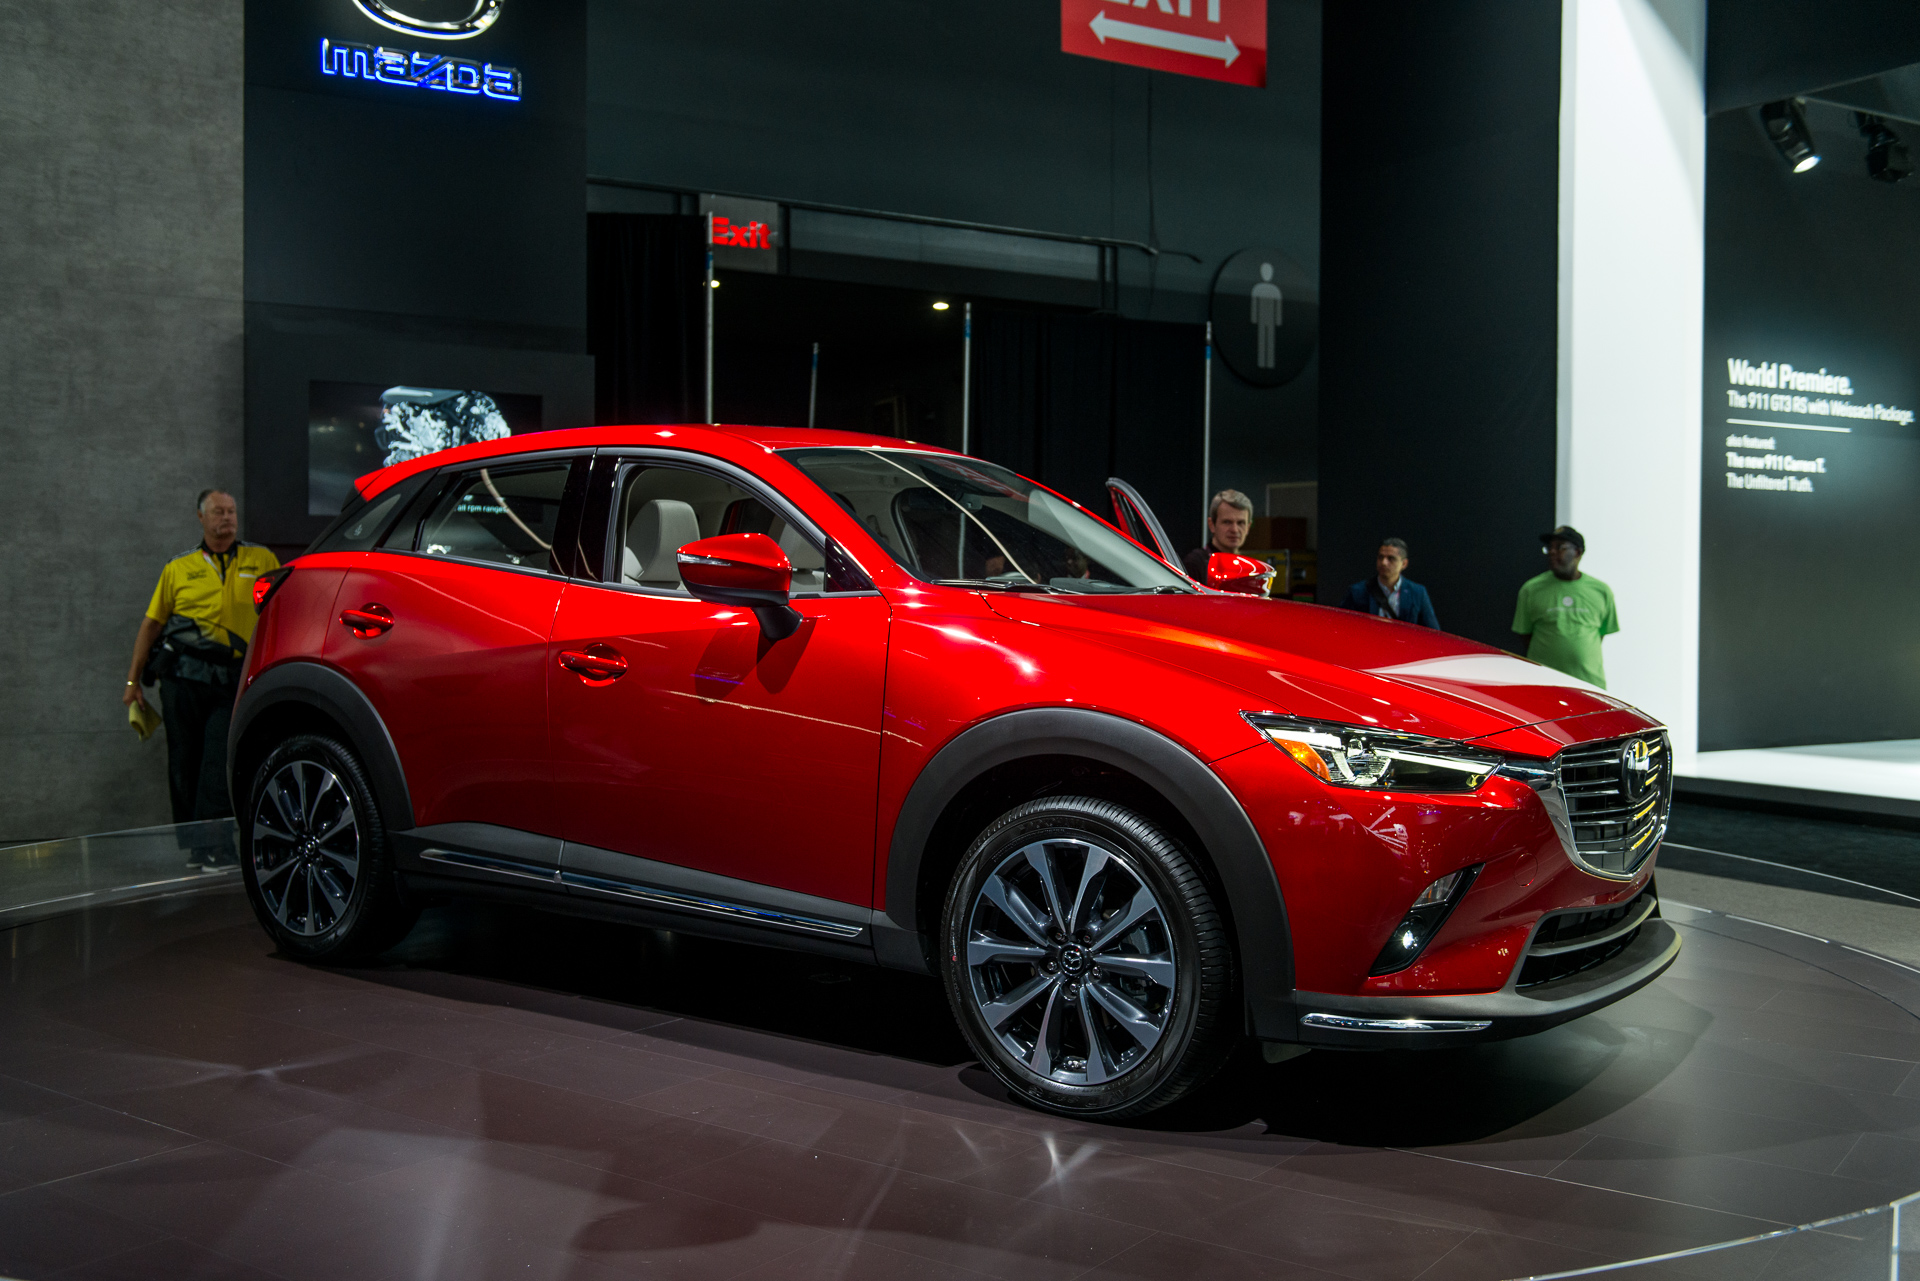 53 The Best 2020 Mazda CX 3 Ratings